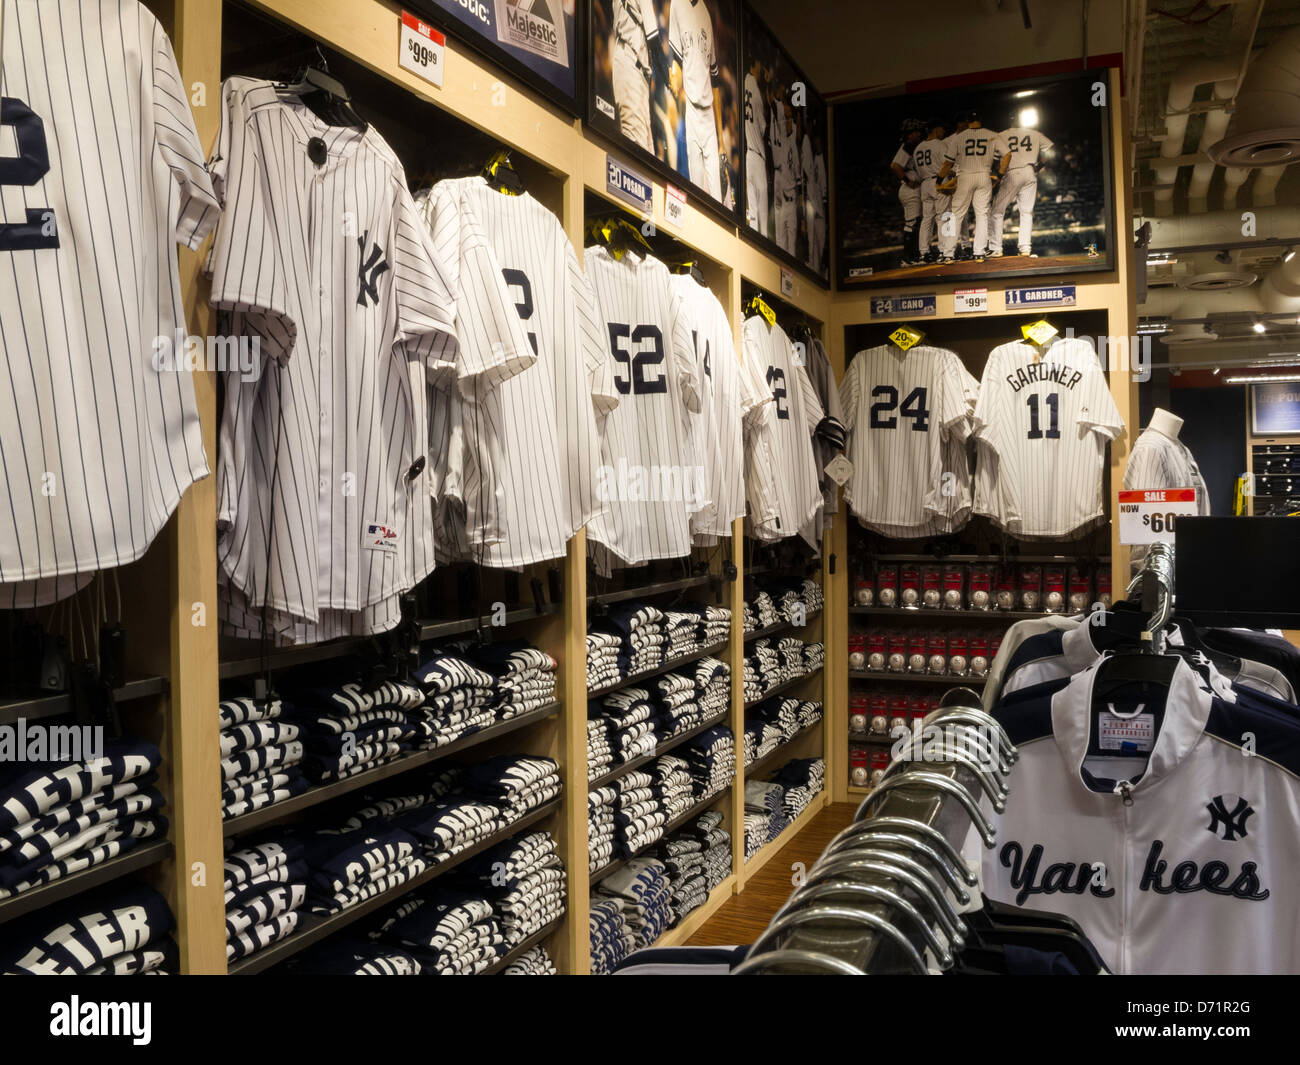 new york yankees 39 jerseys modell 39 s sporting goods store interior stock photo royalty free. Black Bedroom Furniture Sets. Home Design Ideas